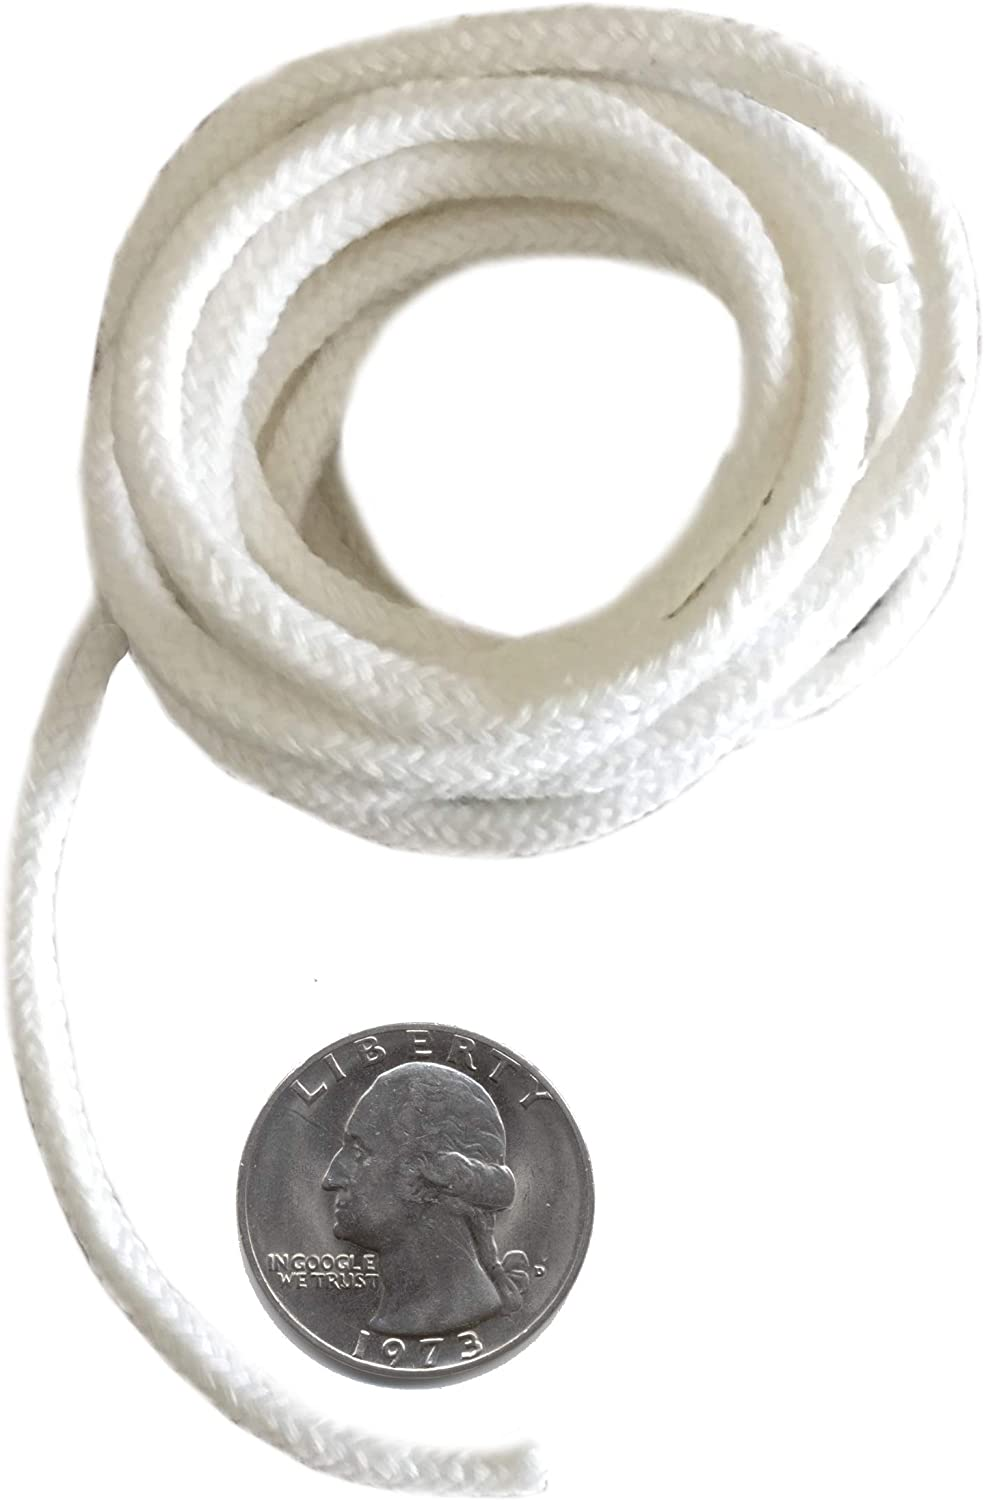 Firefly Brand - 5 San famous Francisco Mall Feet of W Cotton Eco Replacement 3.6mm Braided